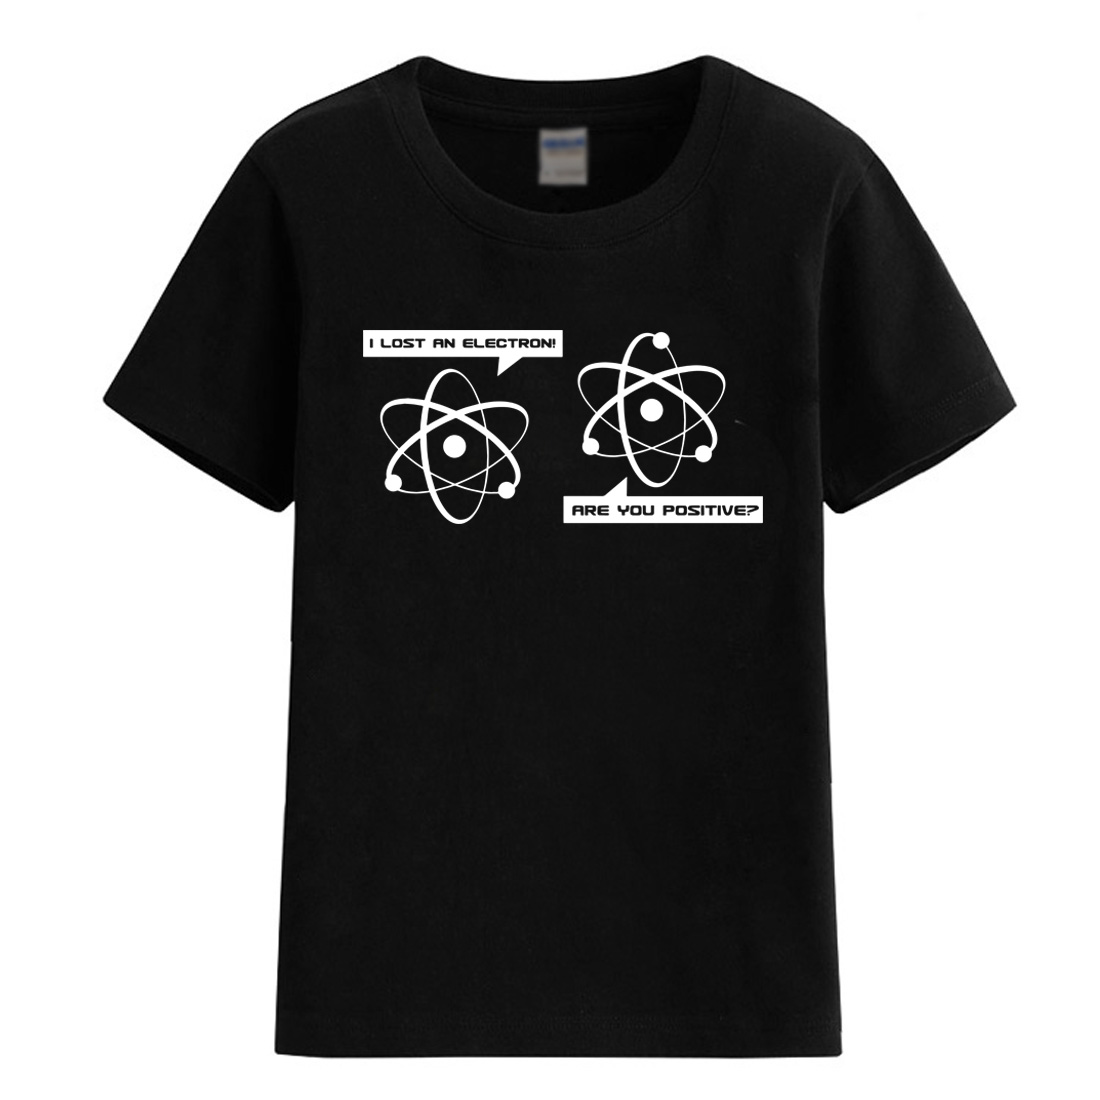 Summer 2018 I Lost an Electron Are You Positive T-shirt for children short sleeve child T-shirts for boys girls cotton t shirt смартфон fly fs523 cirrus 16 lte black